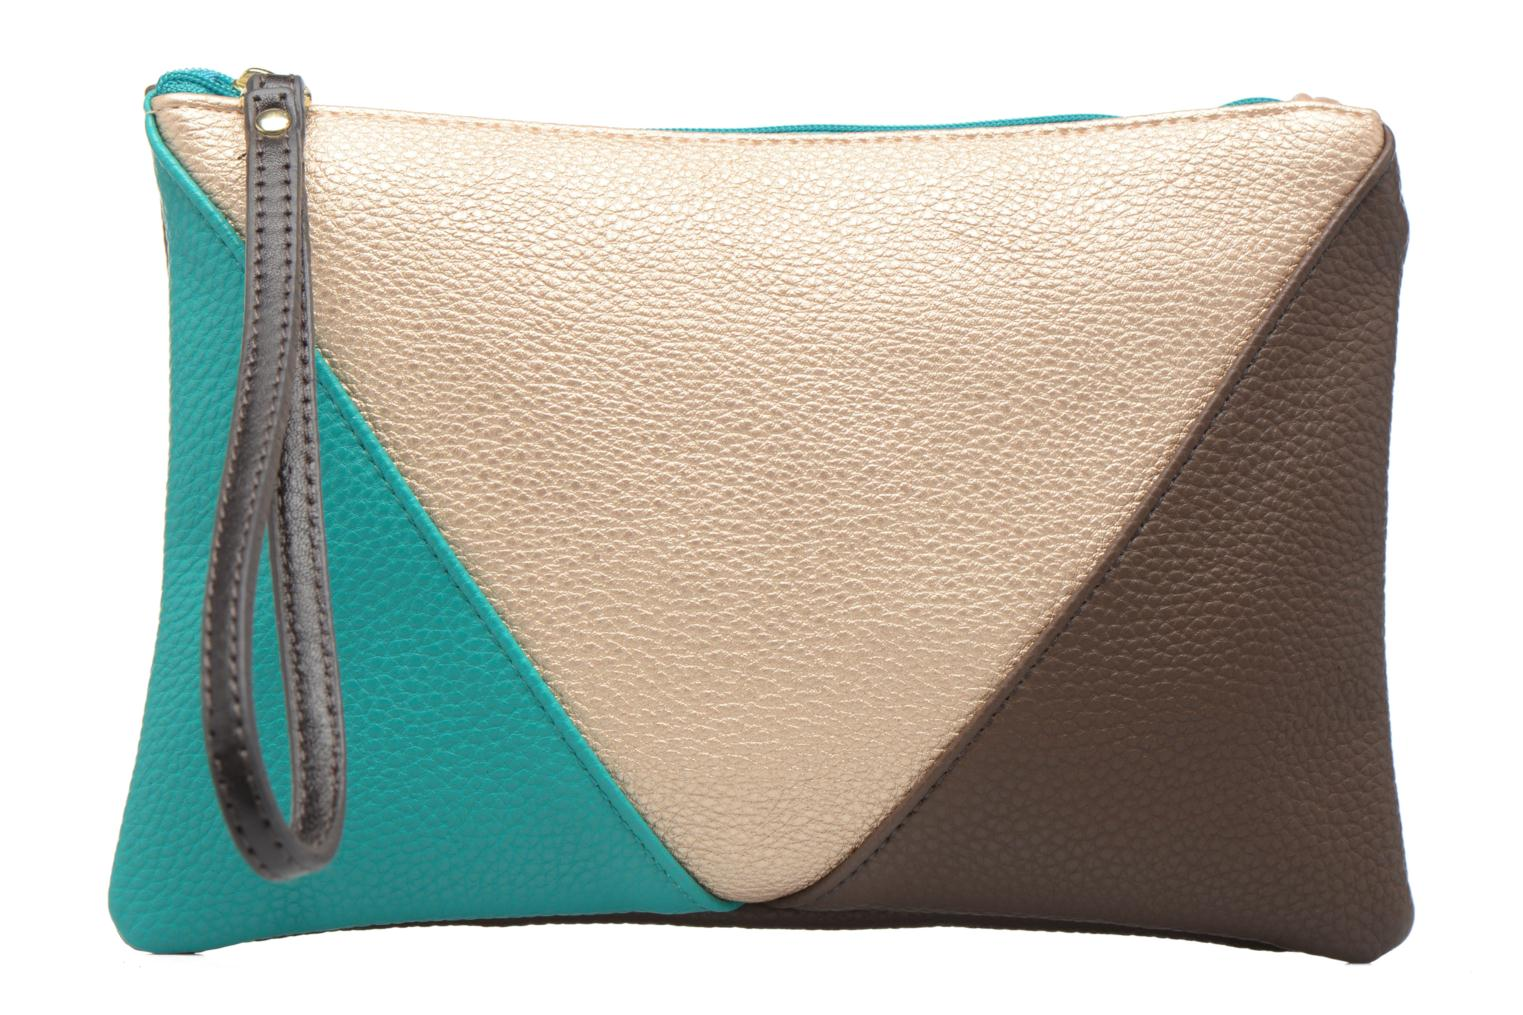 Zipped pocket Kaki/turquoise